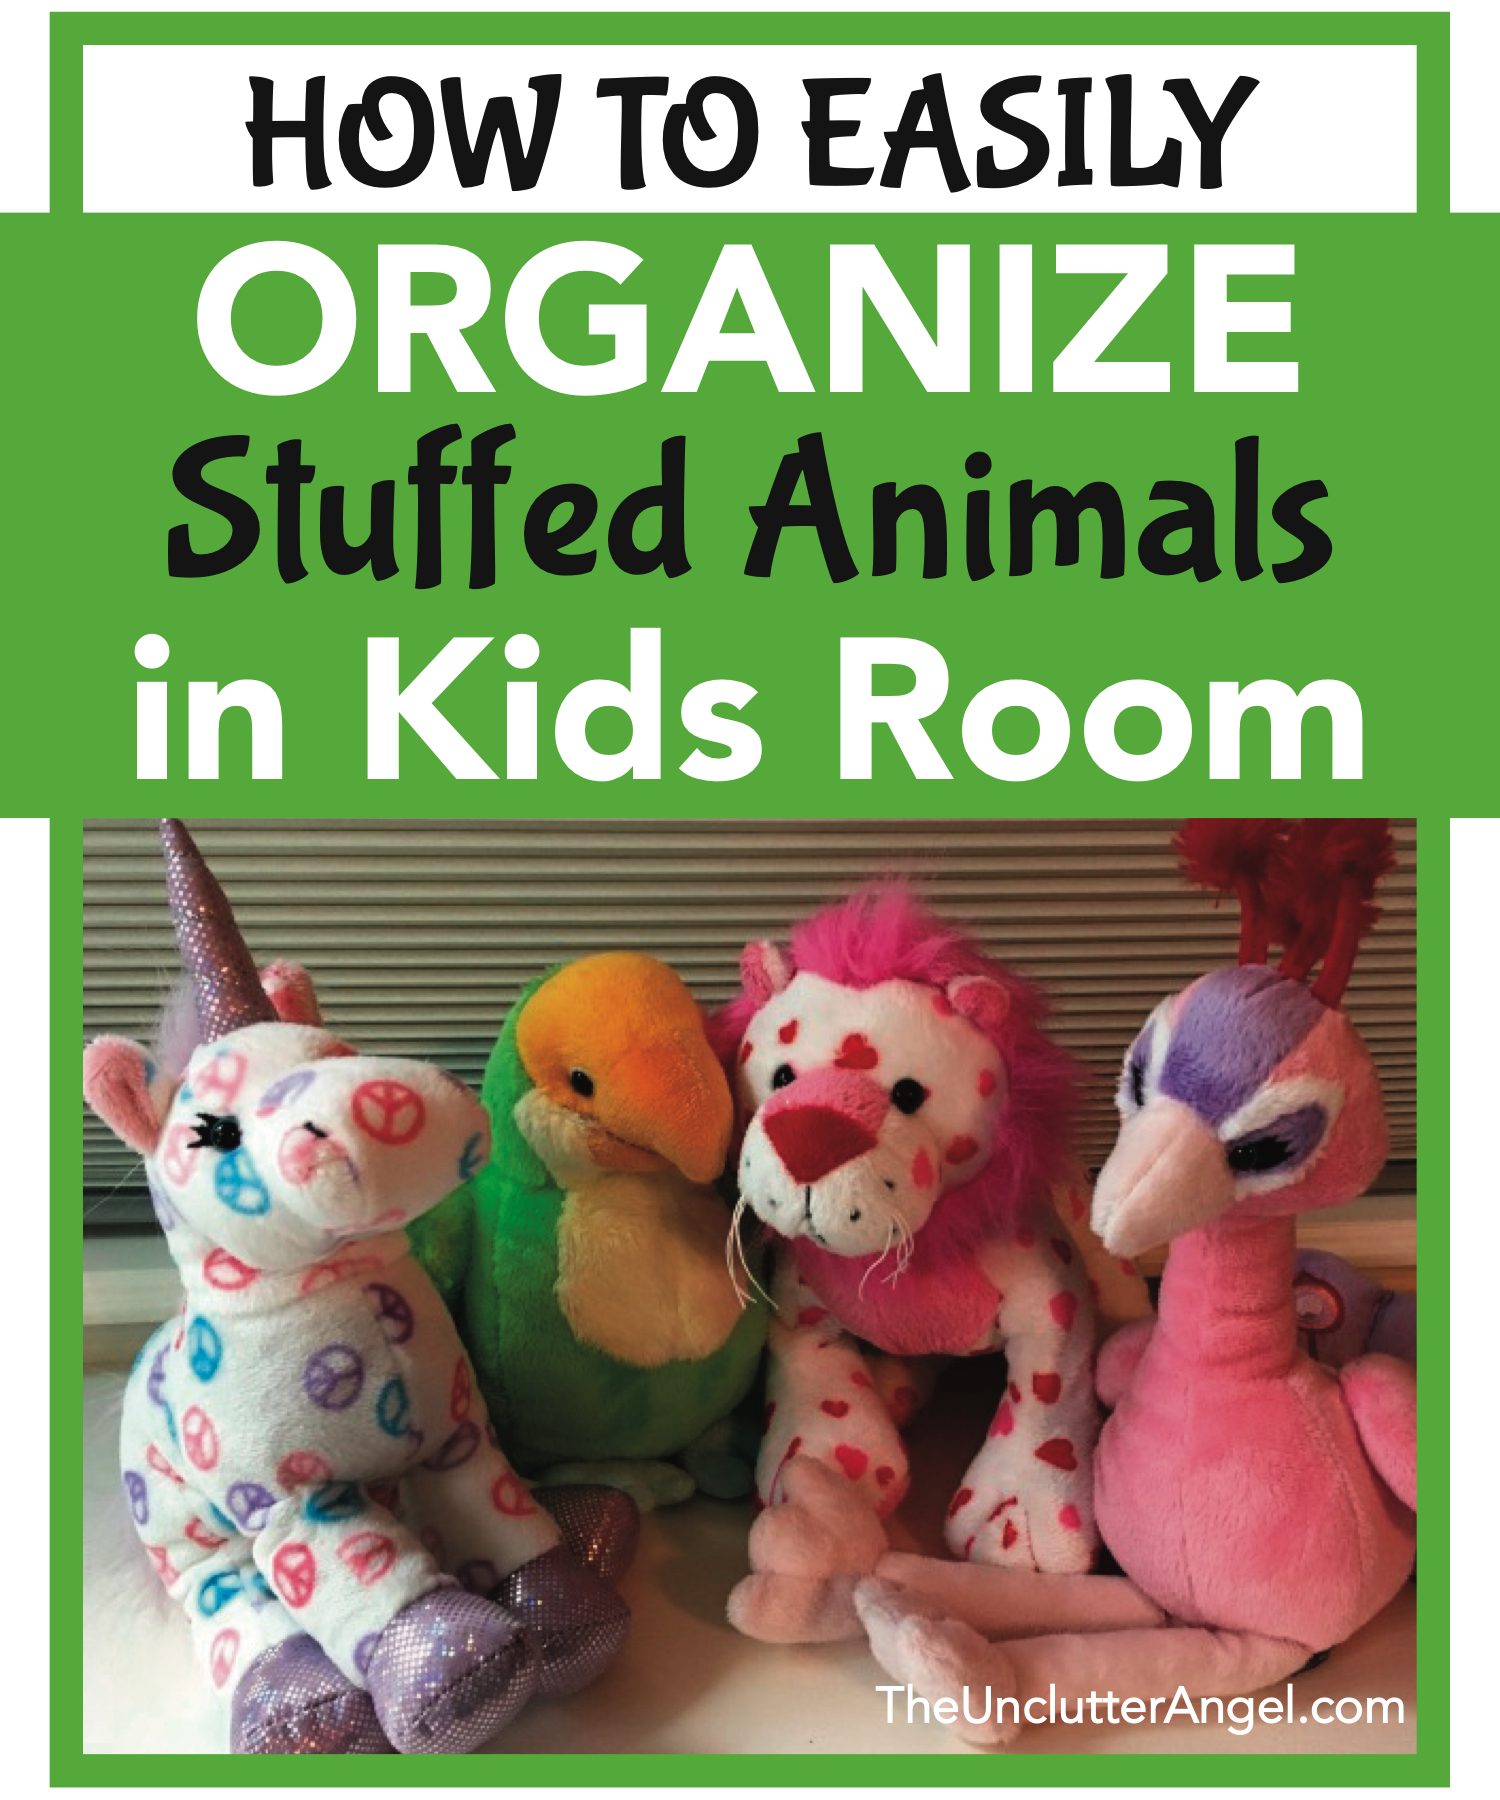 4 No Fuss Ways to Organize Stuffed Animals in the Kids Room. Do you feel overrun with stuffed animals in your home? Is your kiddo's room bursting with plushes? Without burning them in a big bonfire, it's possible to organize stuffed animals in kids room! Stuffed animals are so cute, can hold sweet memories, and can pull at our heart strings when they resemble something that our kids love. BUT.